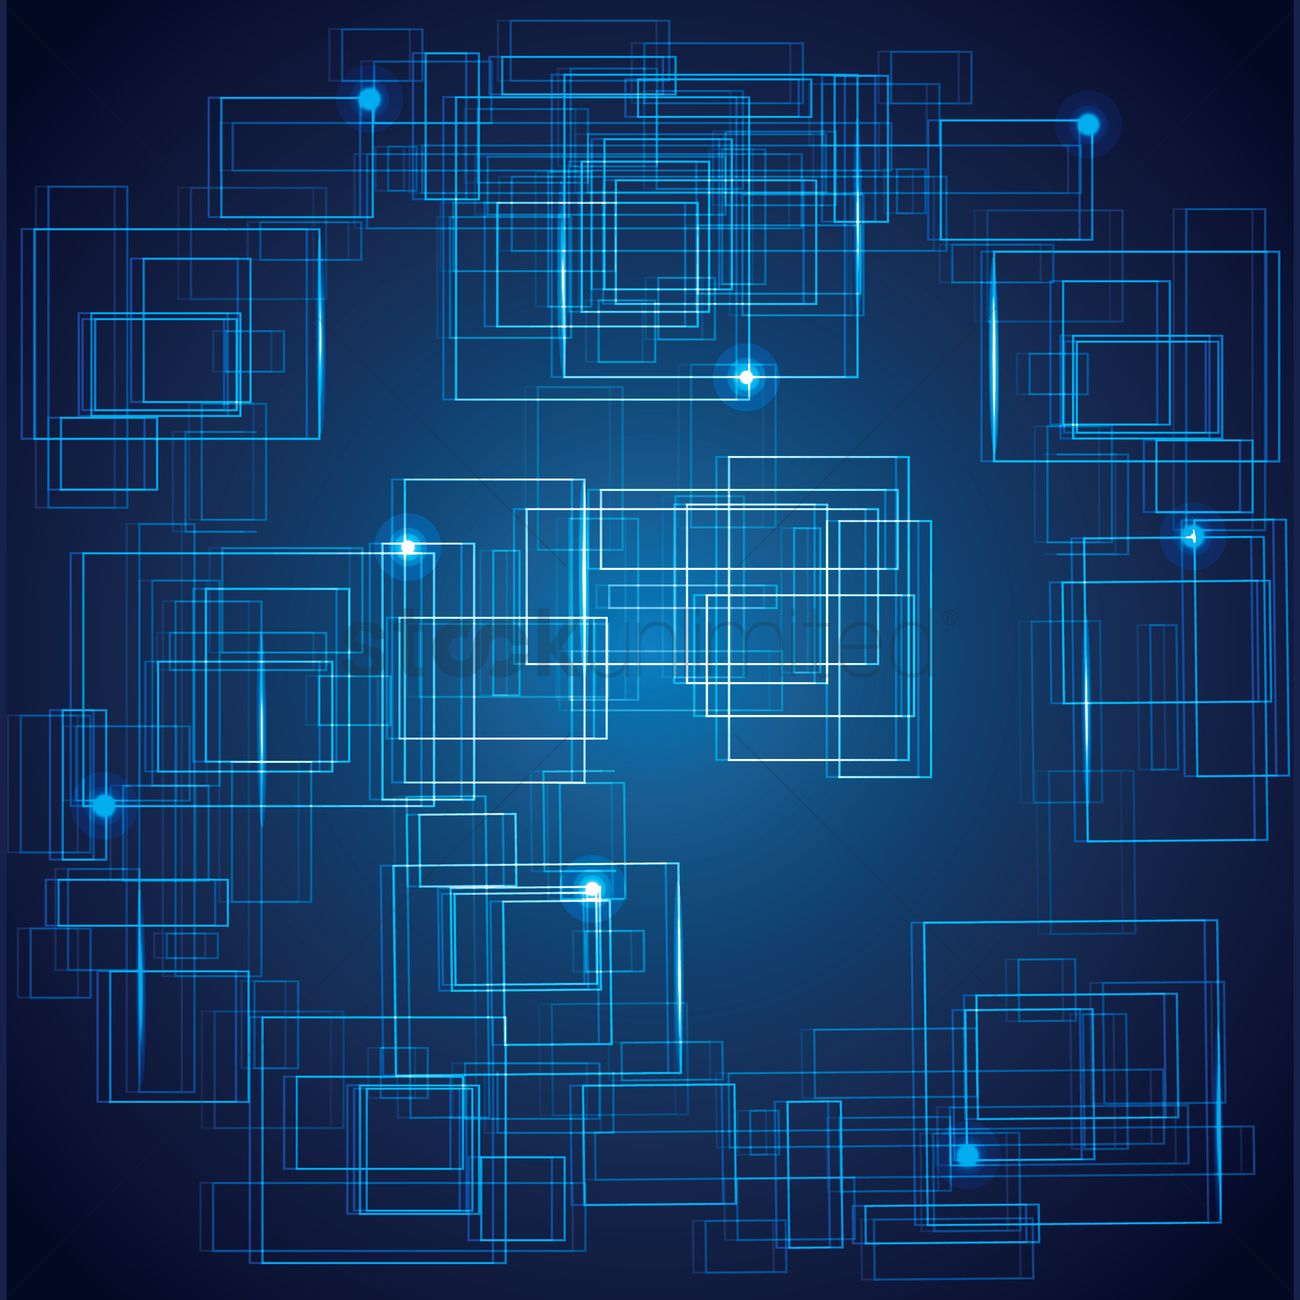 Abstract Computer Blue Background Vector Image